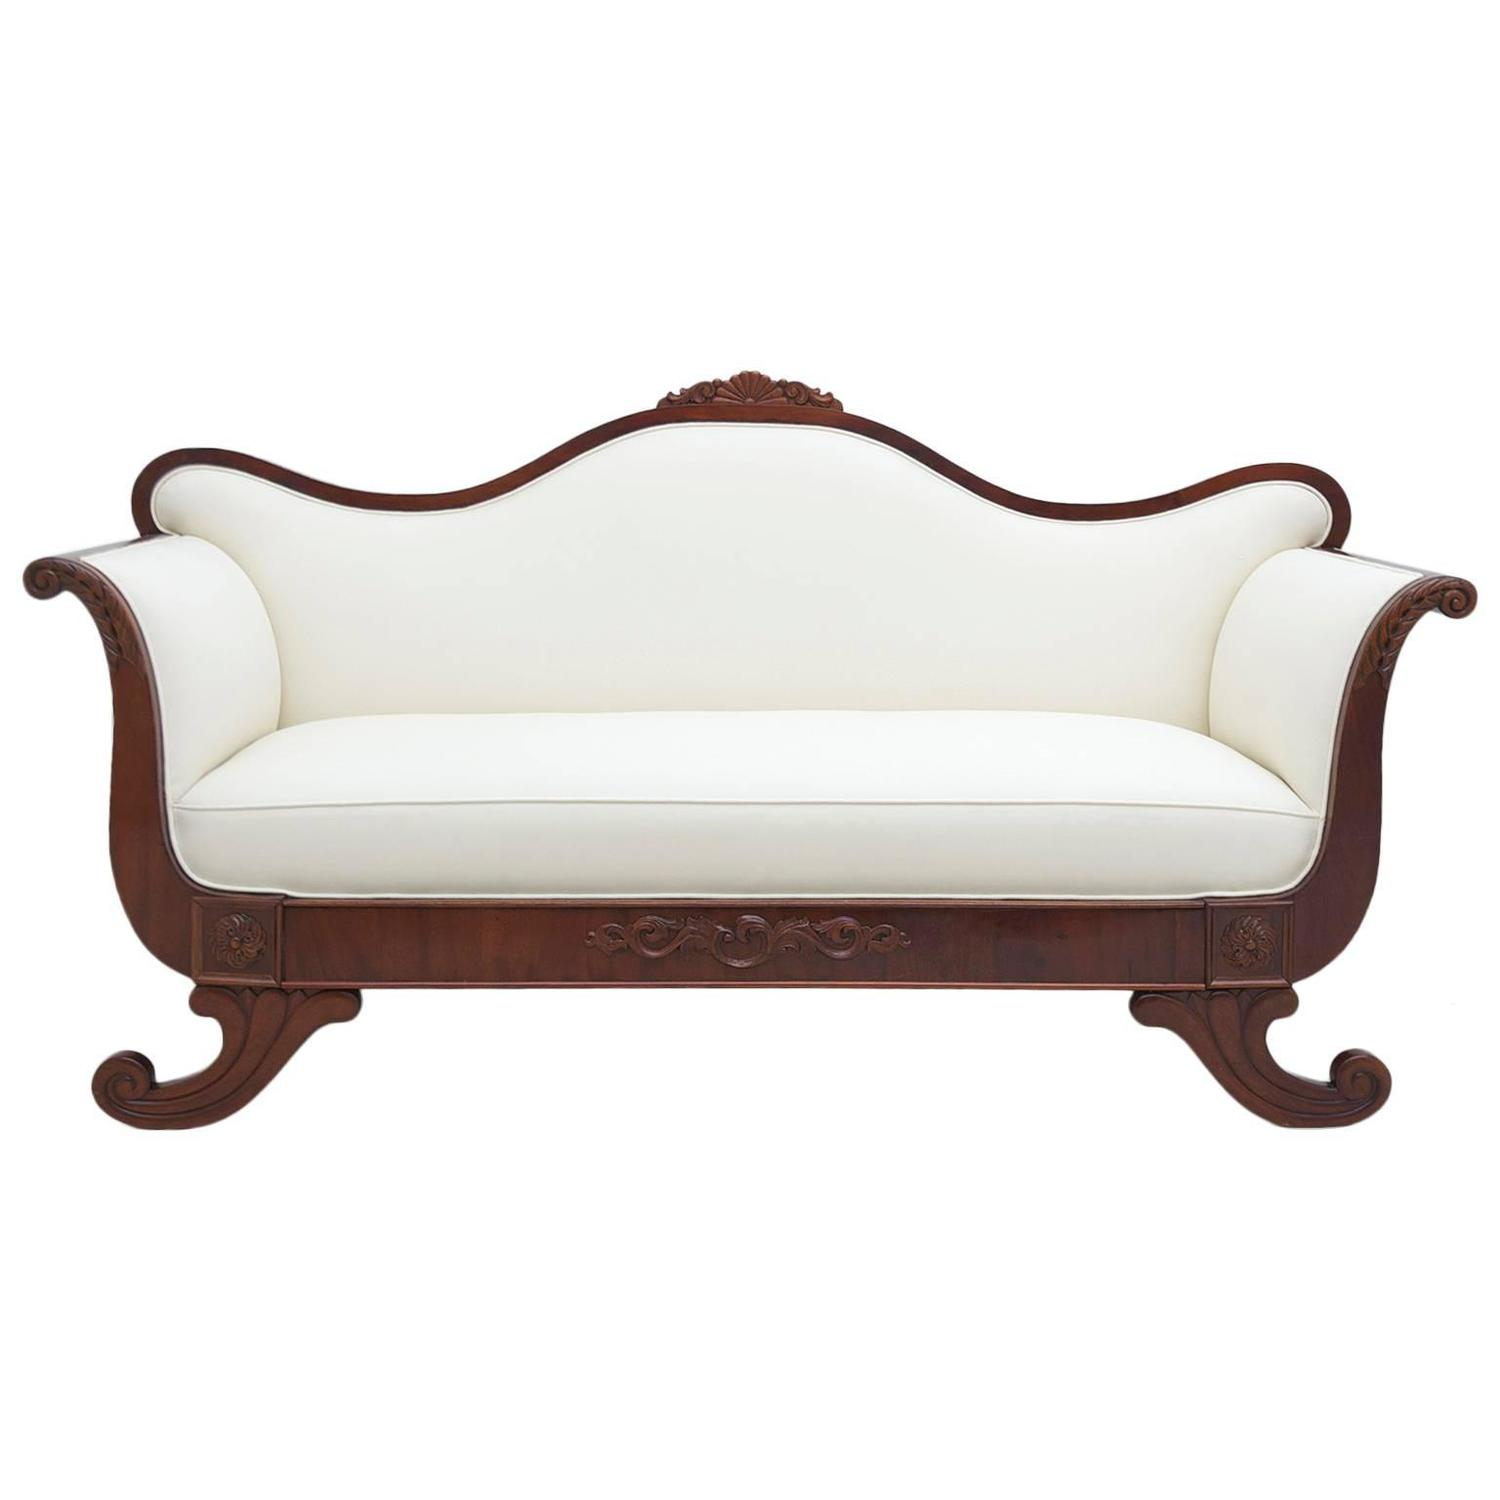 Scandinavian empire or early biedermeier sofa with mahogany frame and upholstery bonninashley Biedermeier sofa